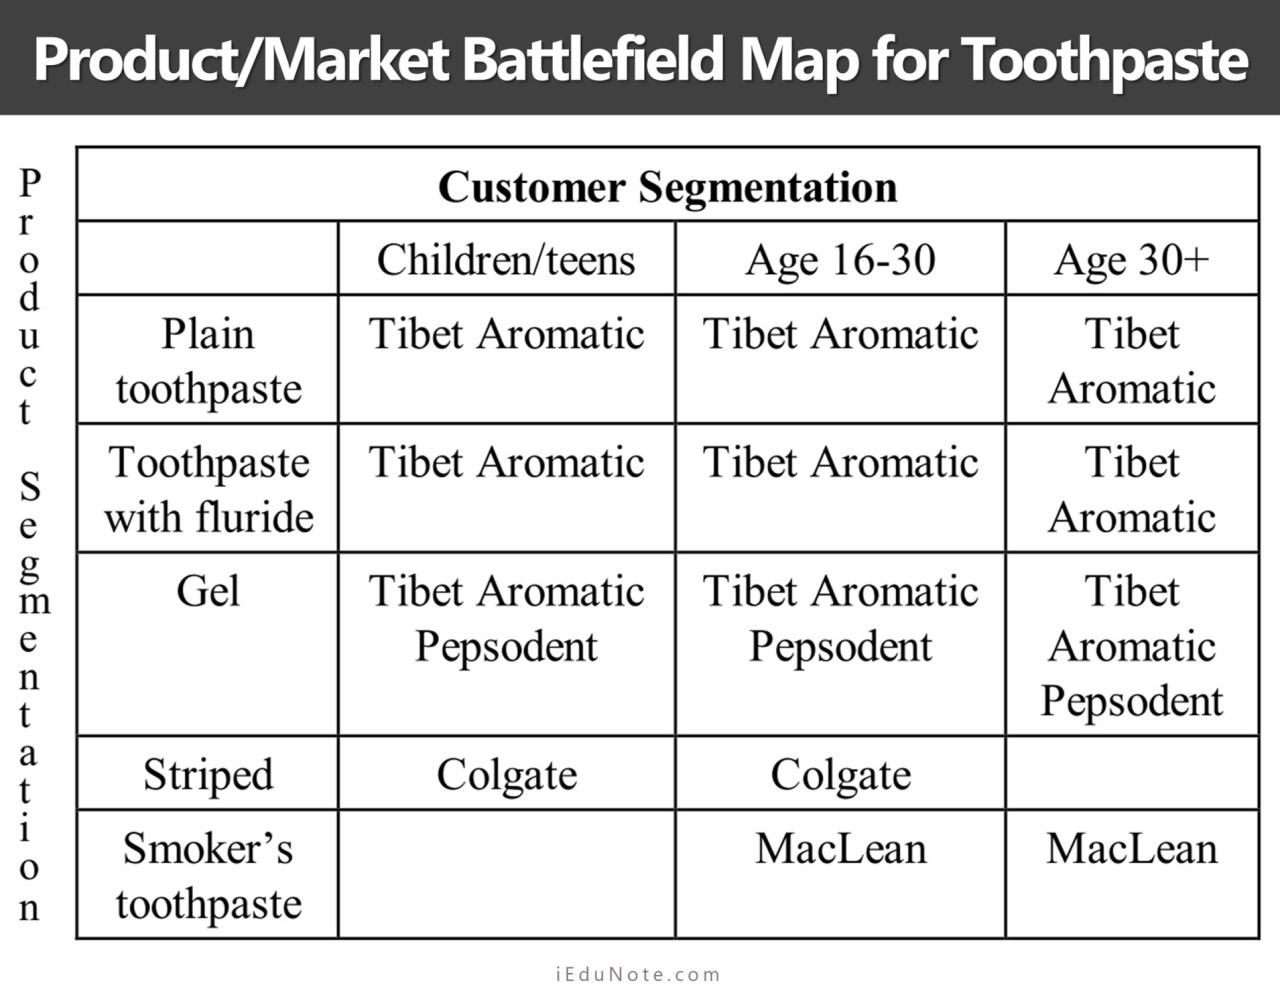 product market battlefield map for toothpaste